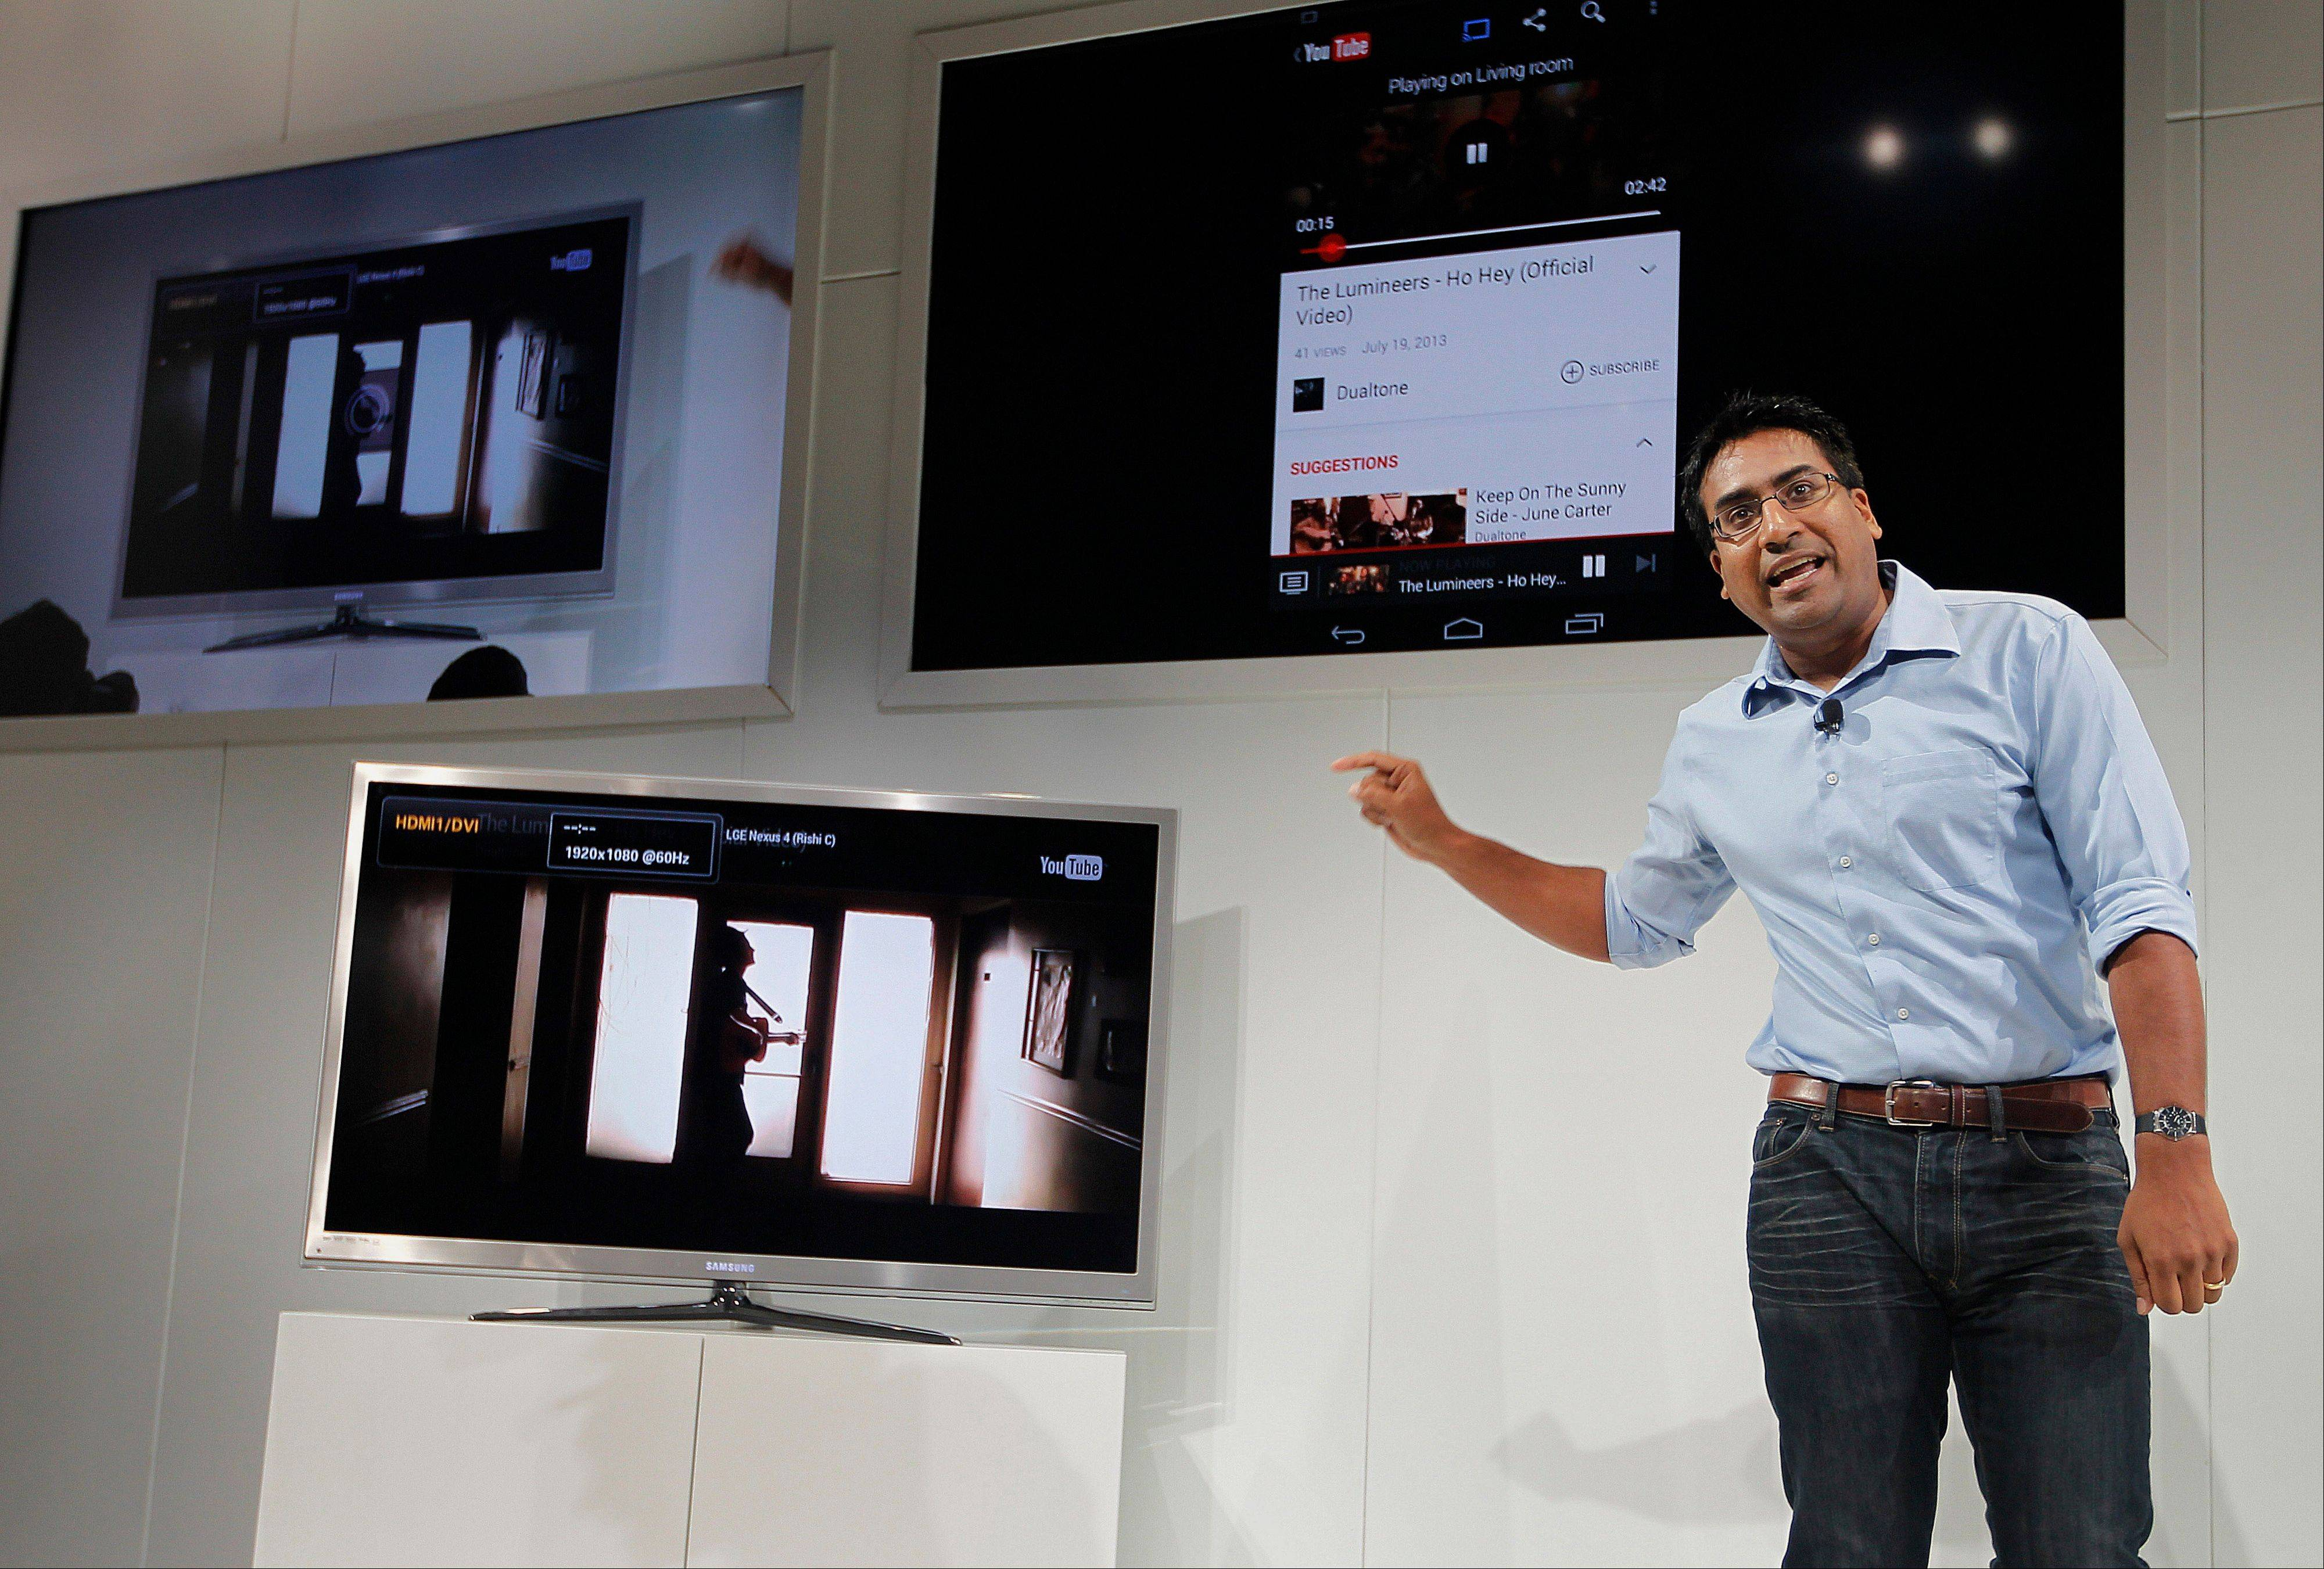 Rishi Chandra, senior product manager for Google Inc., speaks about Google ChromeCast during an event in San Francisco, California, U.S., on Wednesday